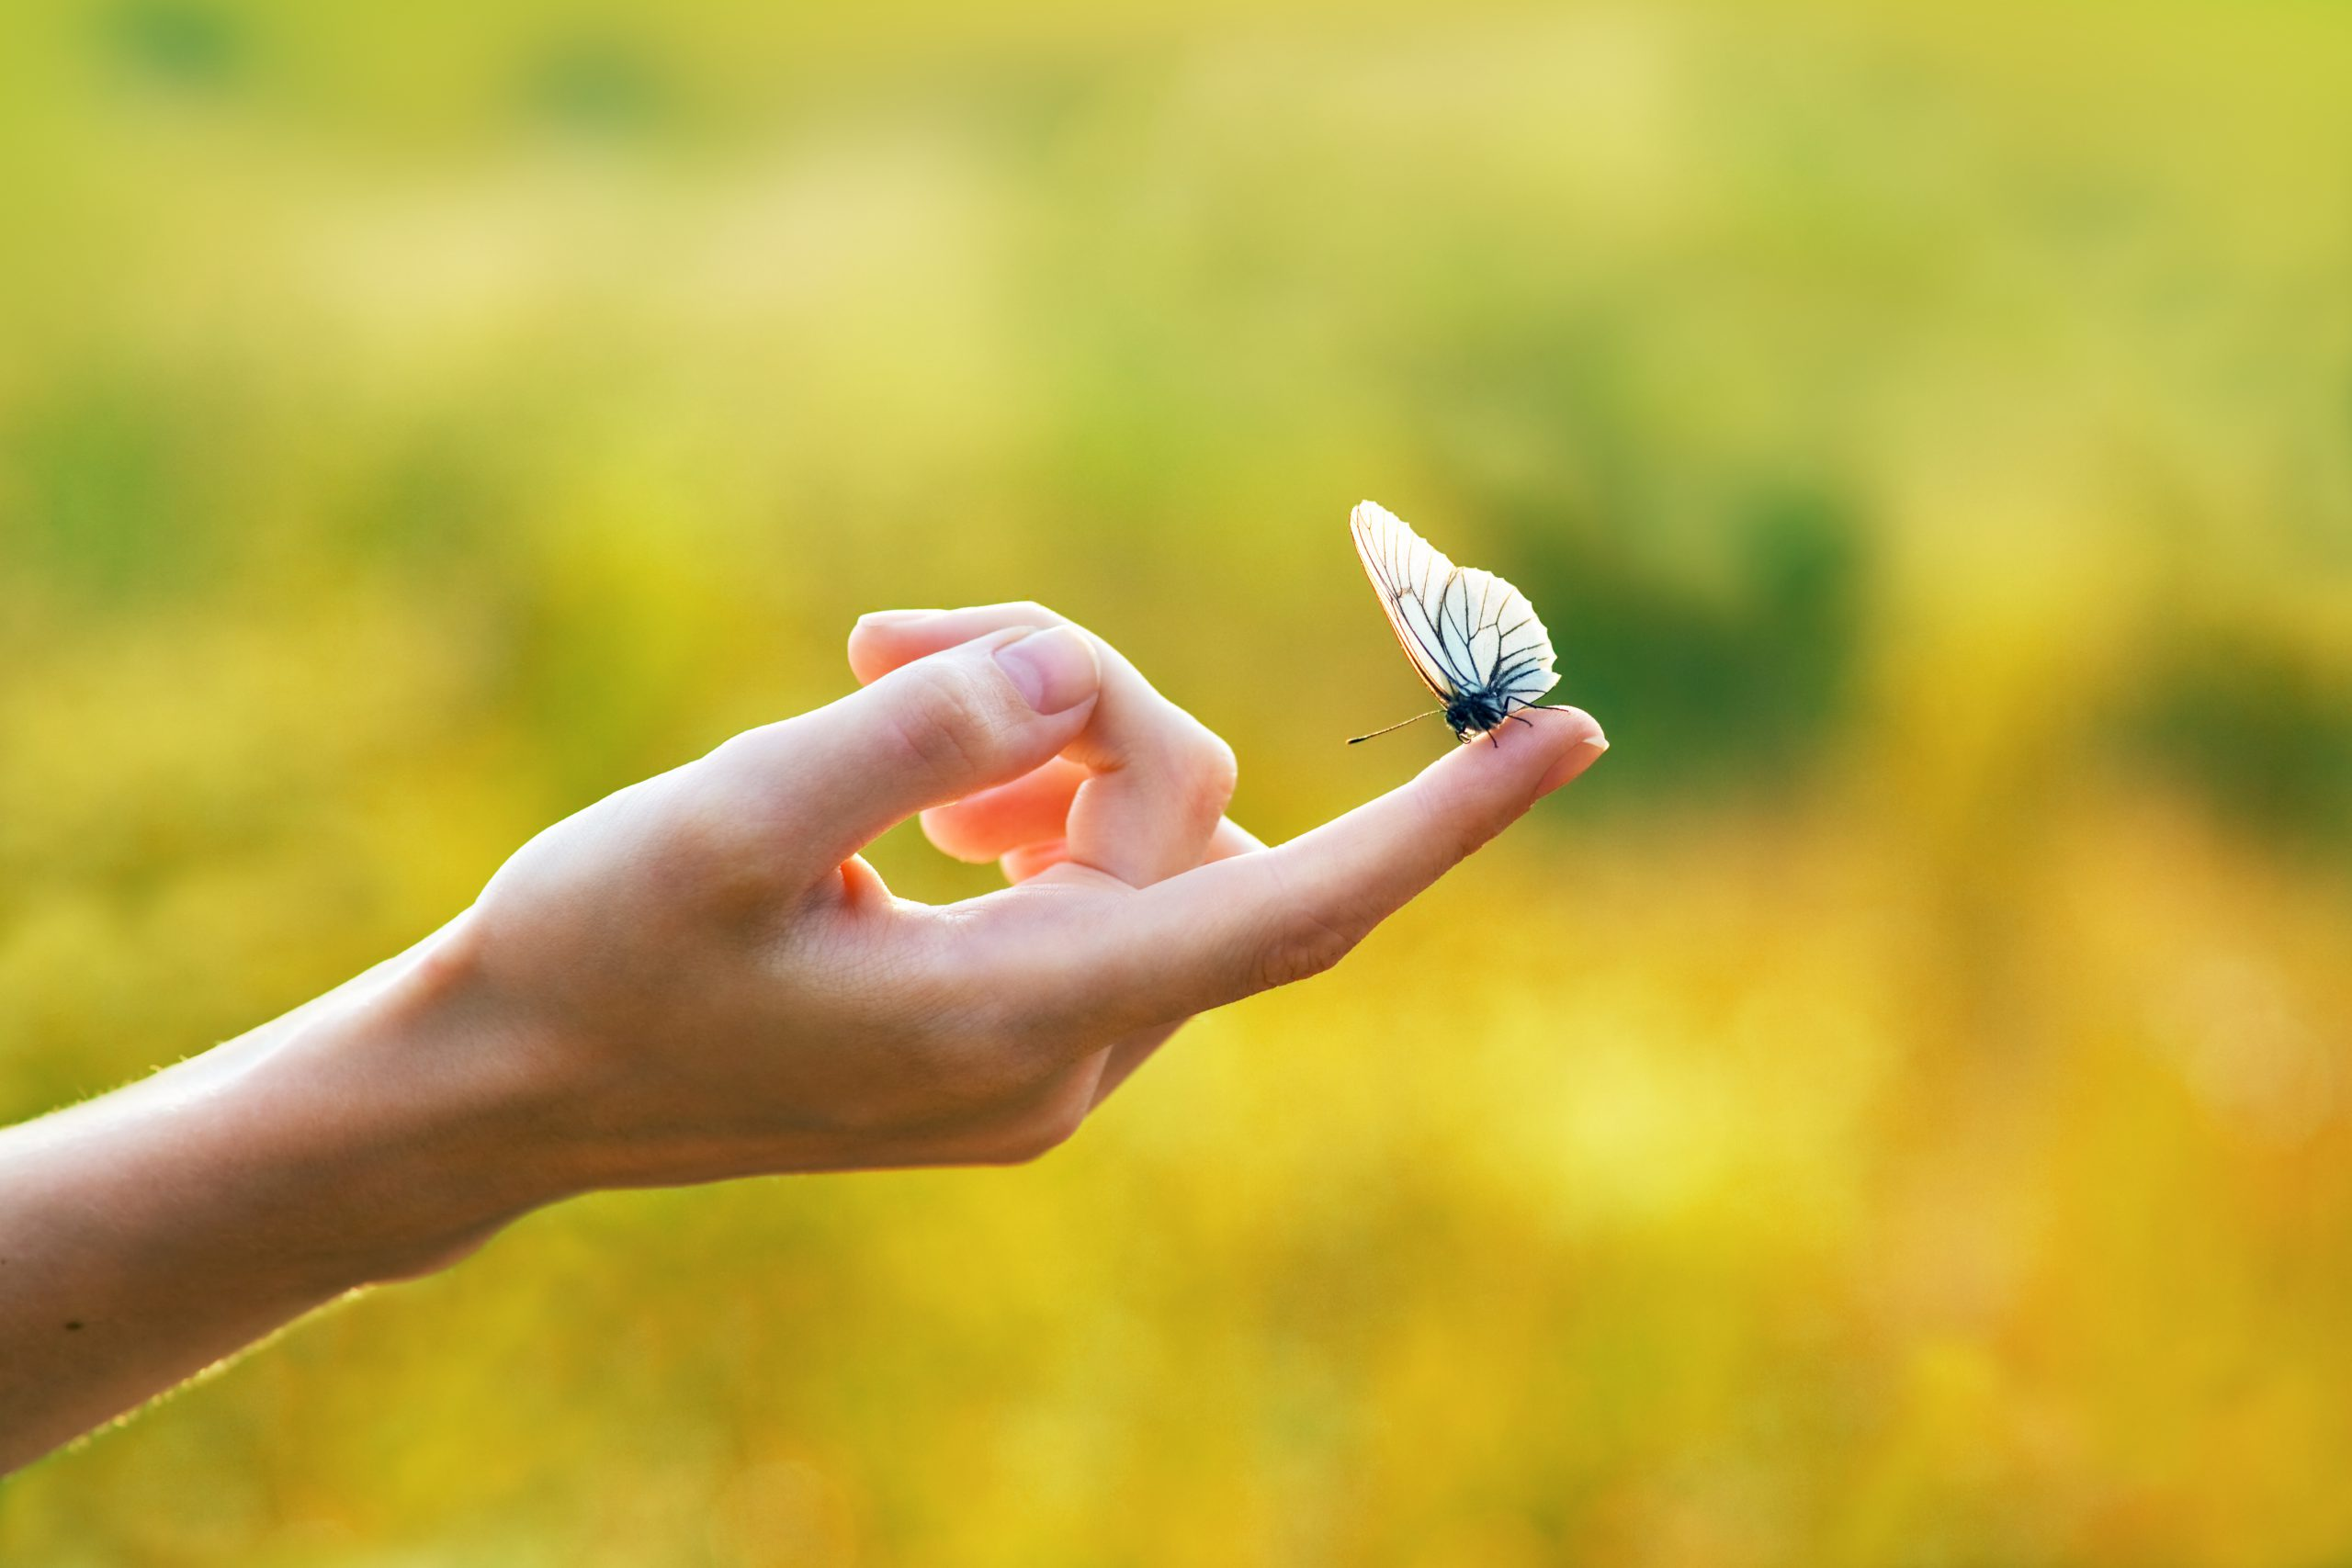 Yomento leadership training focuses on small actions, for big impact. Like the butterfly effect.